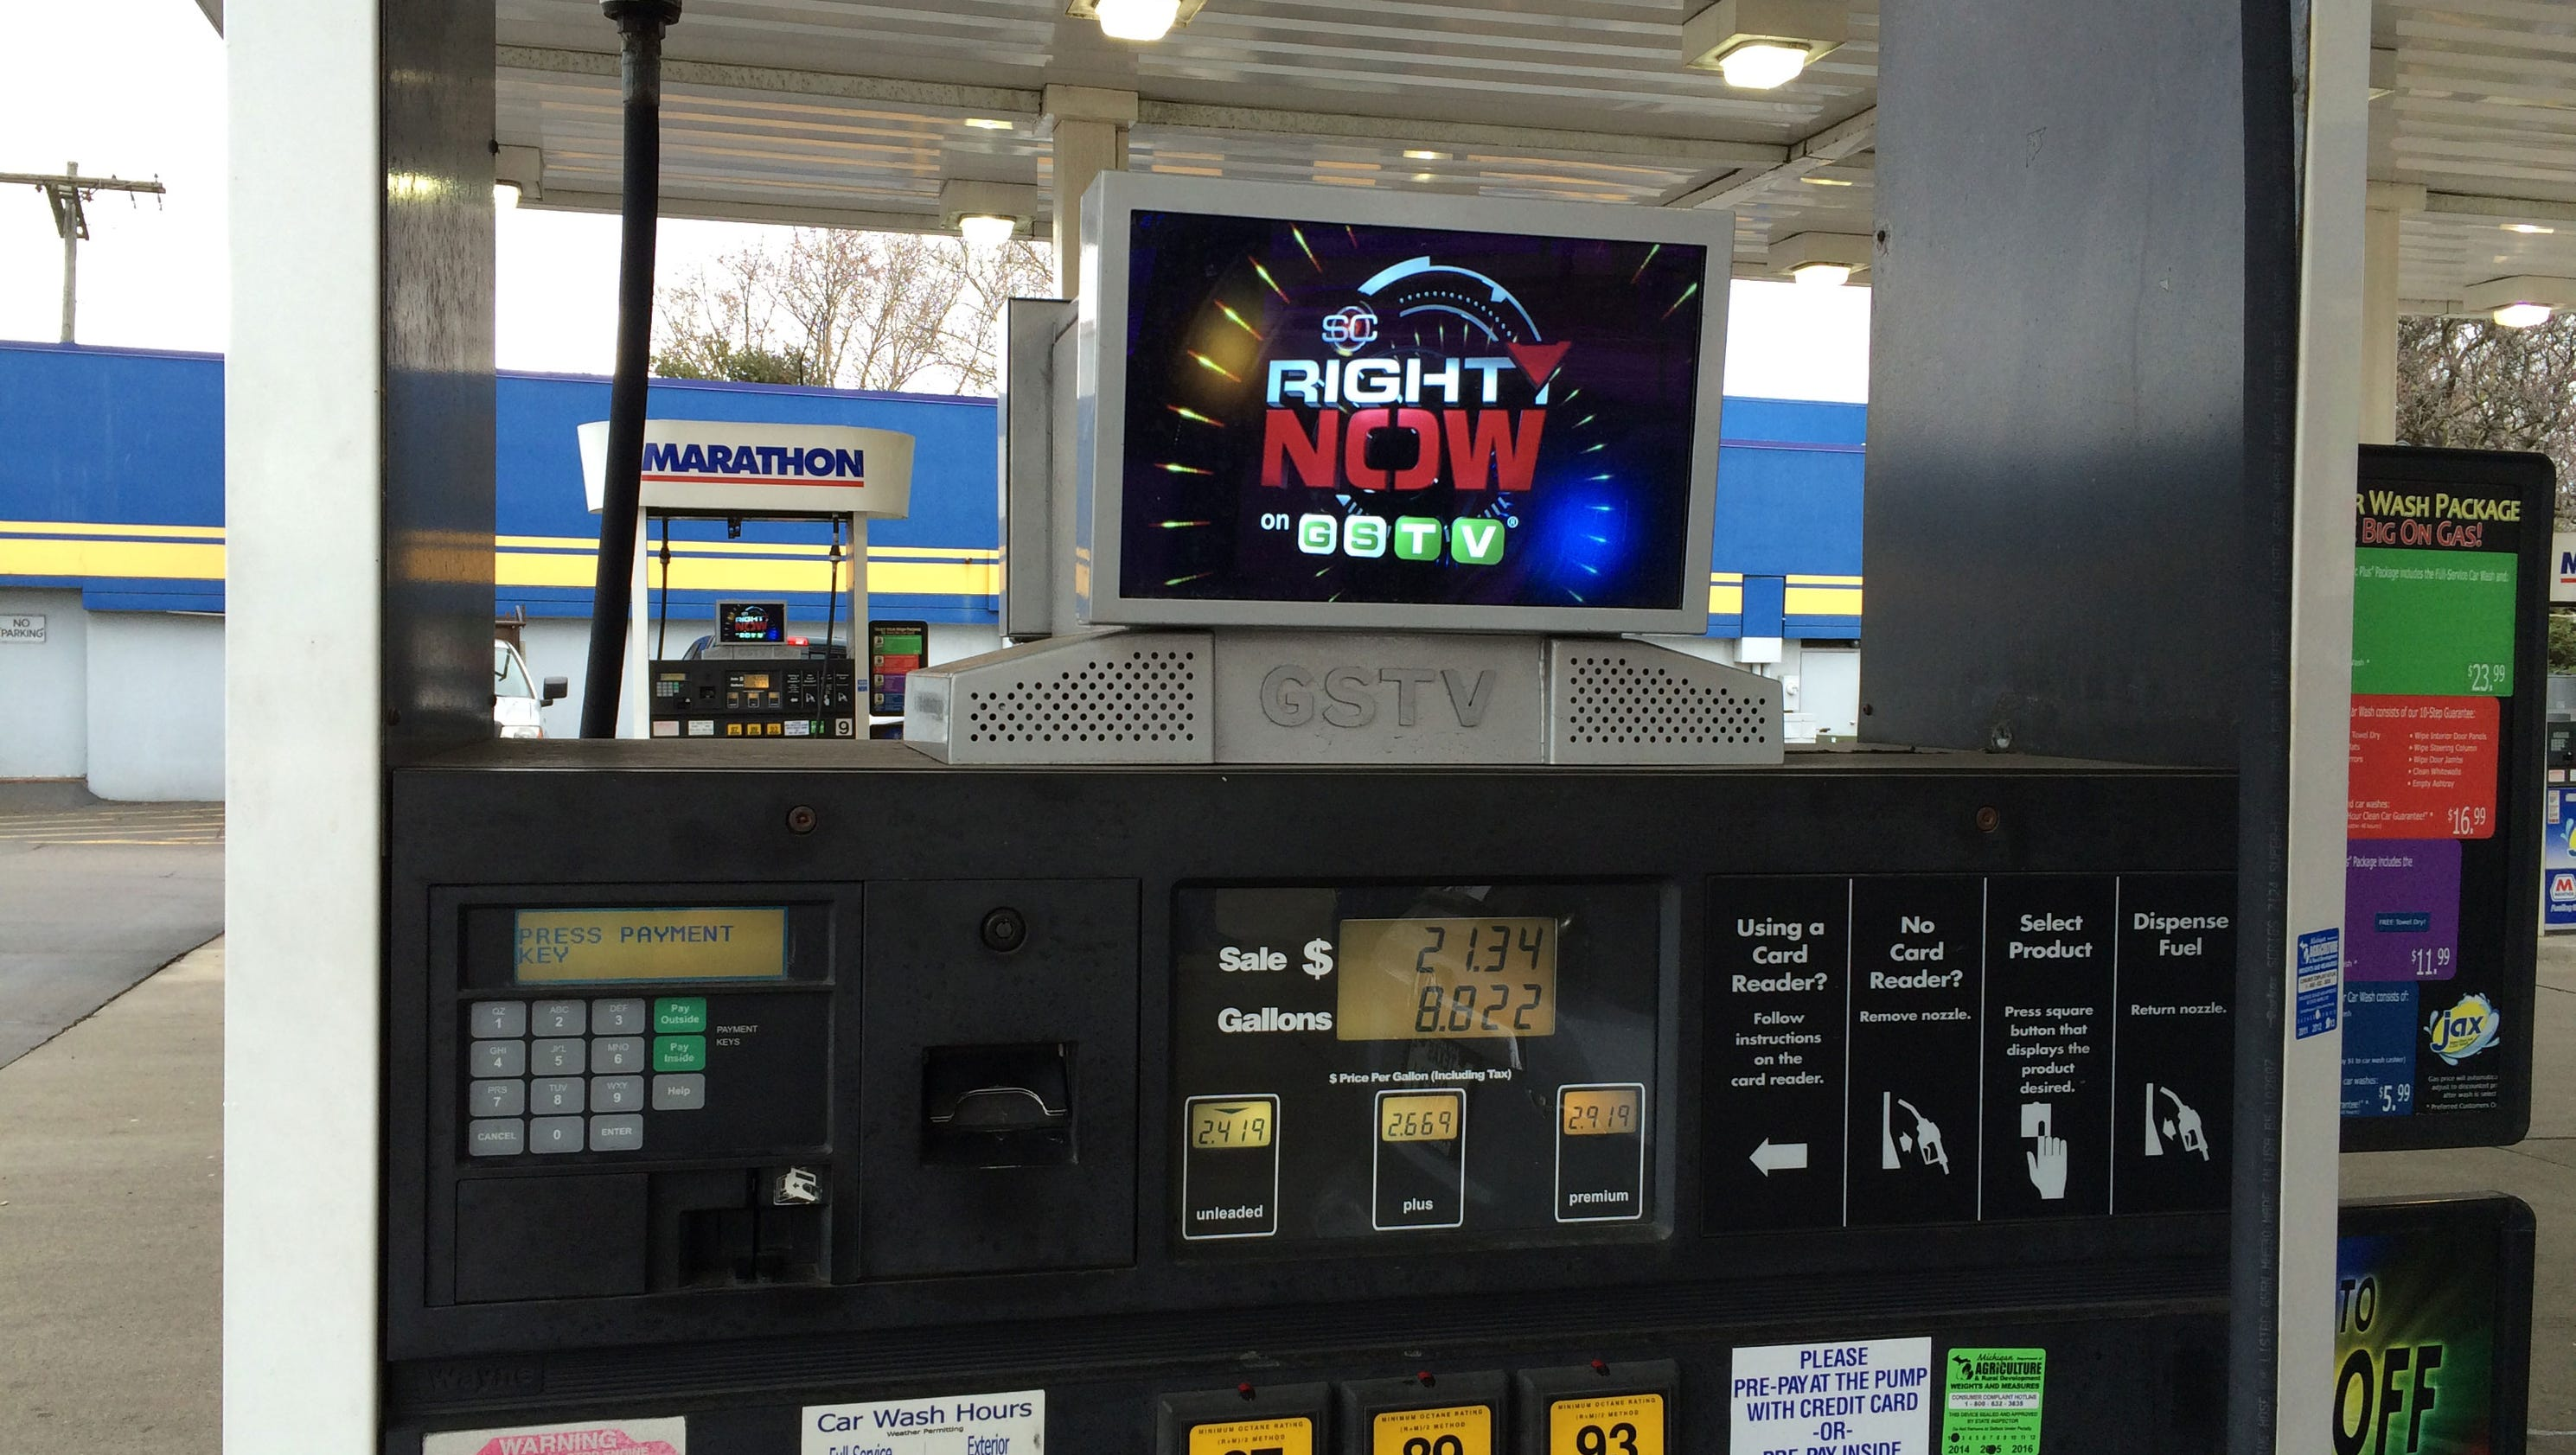 Mobil Gas Card >> Tom Walsh: Gas Station TV moves pumps more growth into downtown